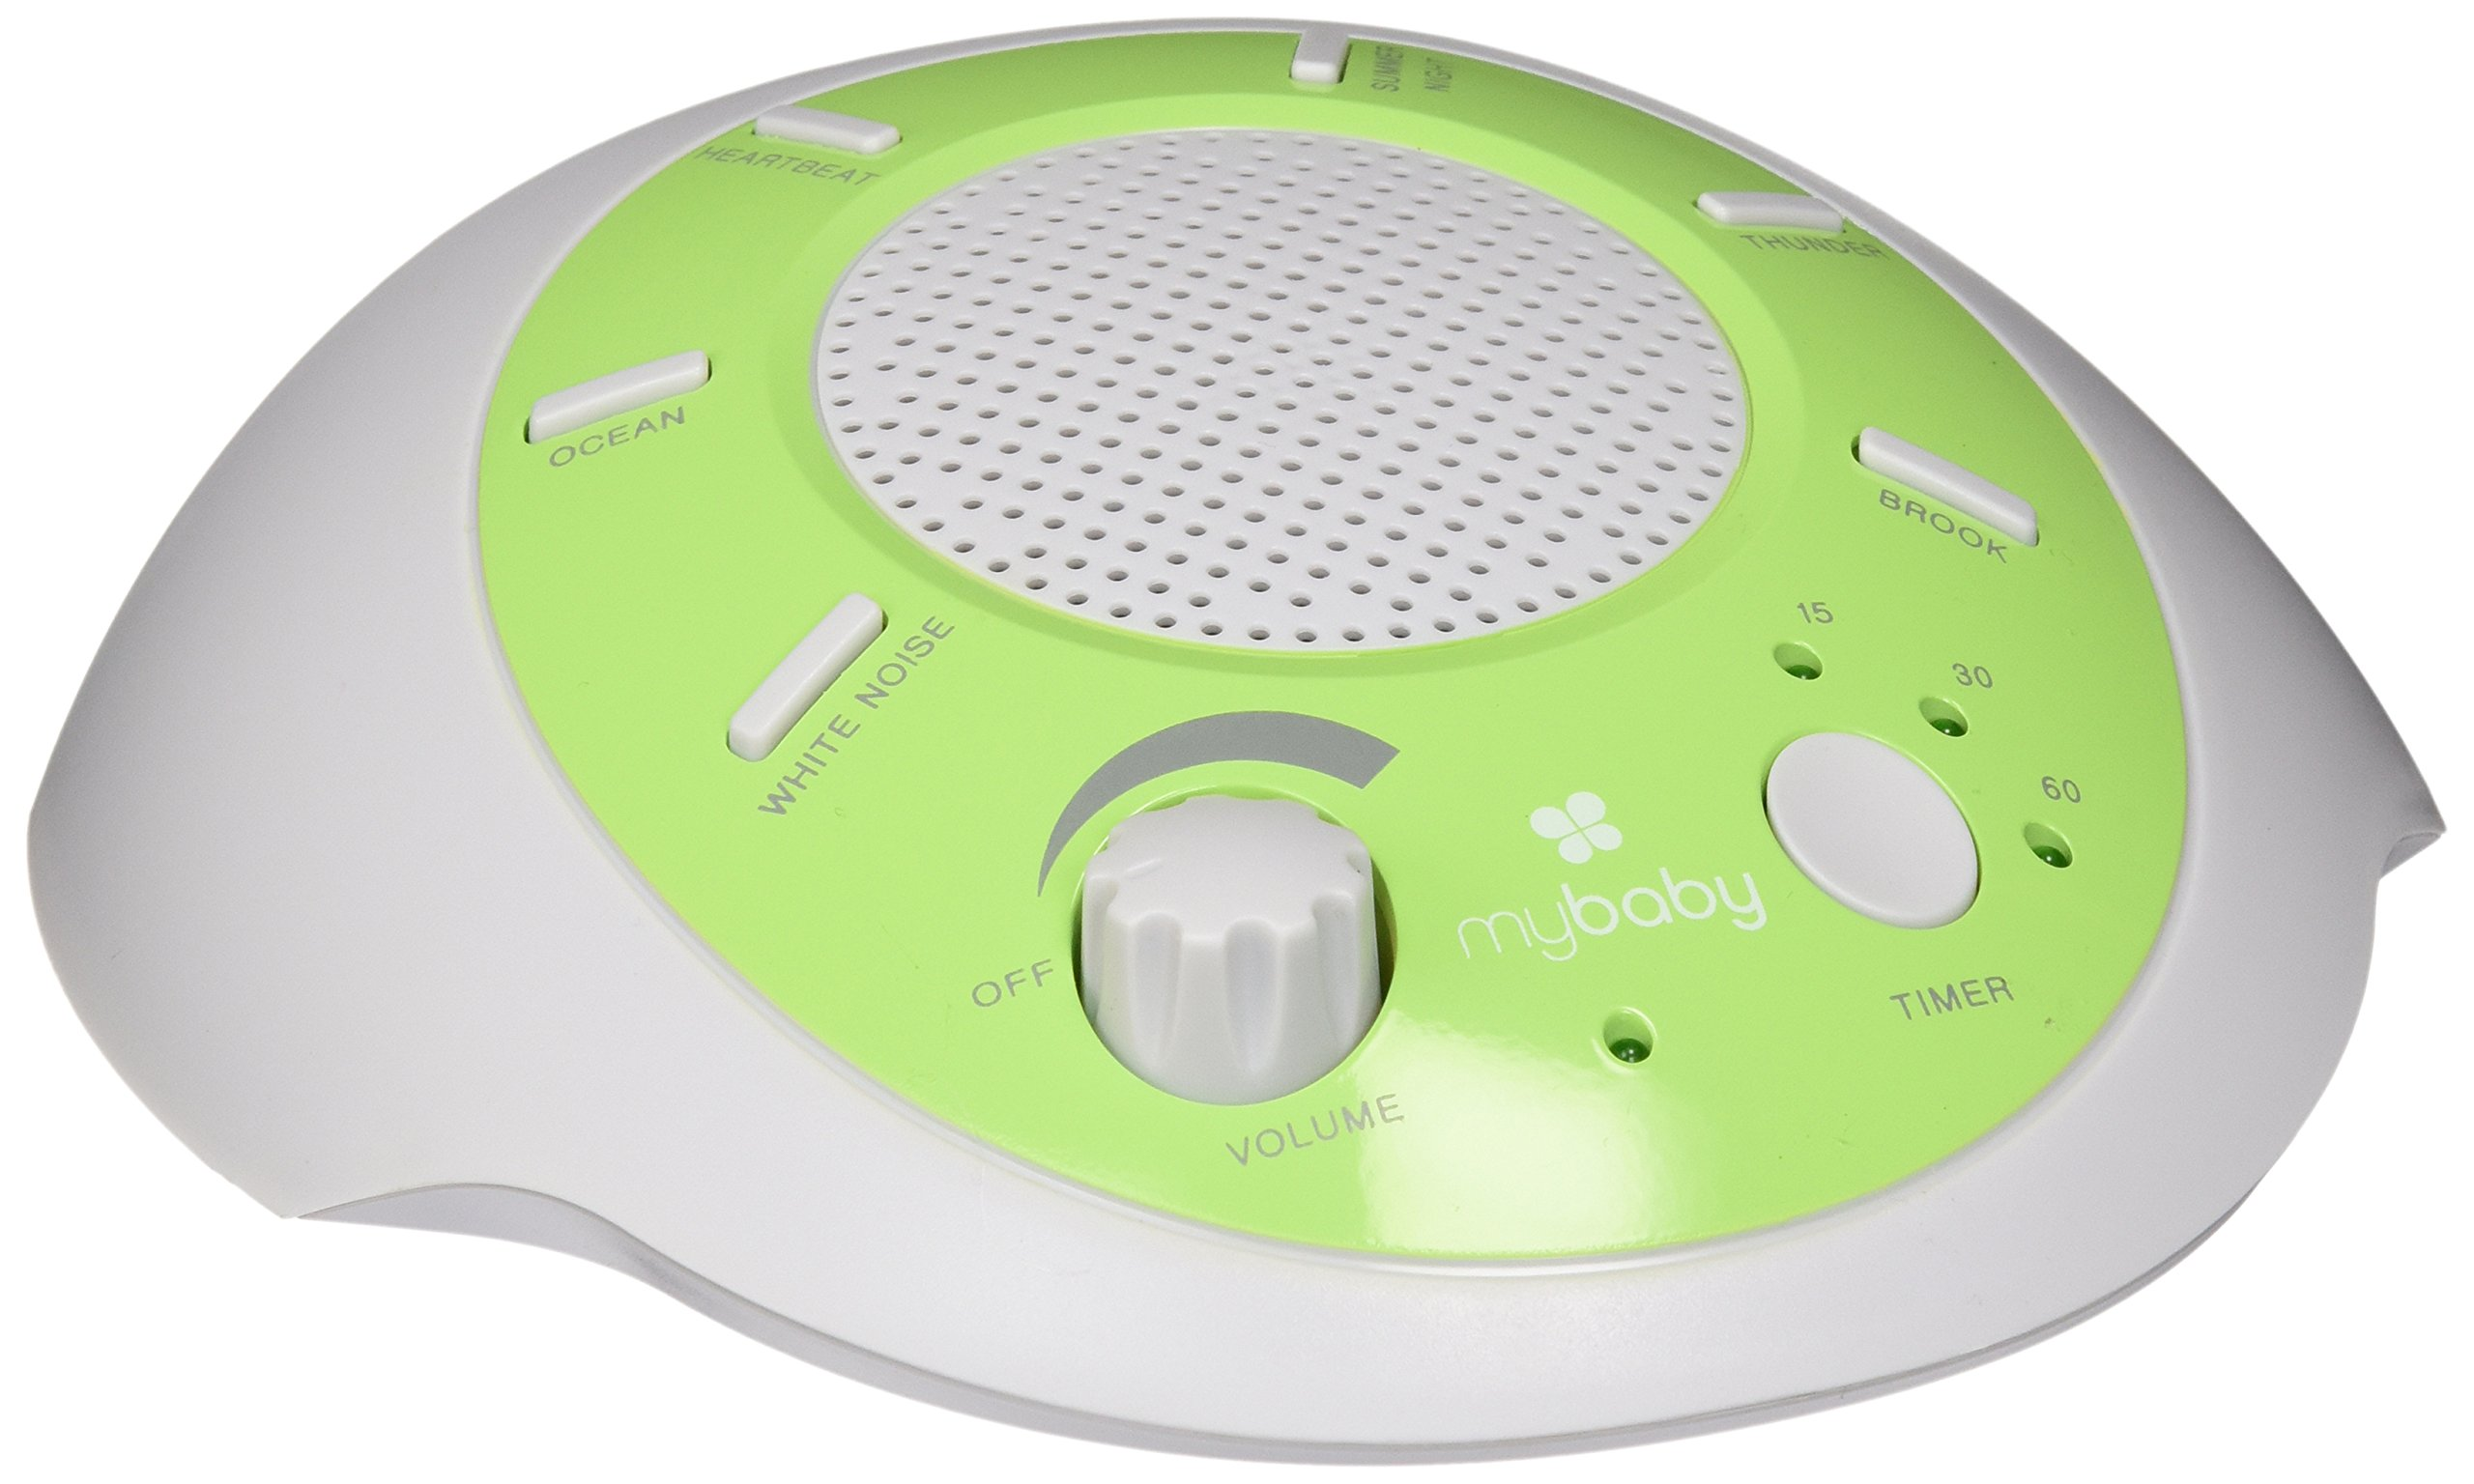 myBaby SoundSpa Portable Machine, Plays 6 Natural Sounds, Auto-Off Timer, Portable for New Mother or Traveler, Battery or Adapter Operated, MYB-S200 by HoMedics